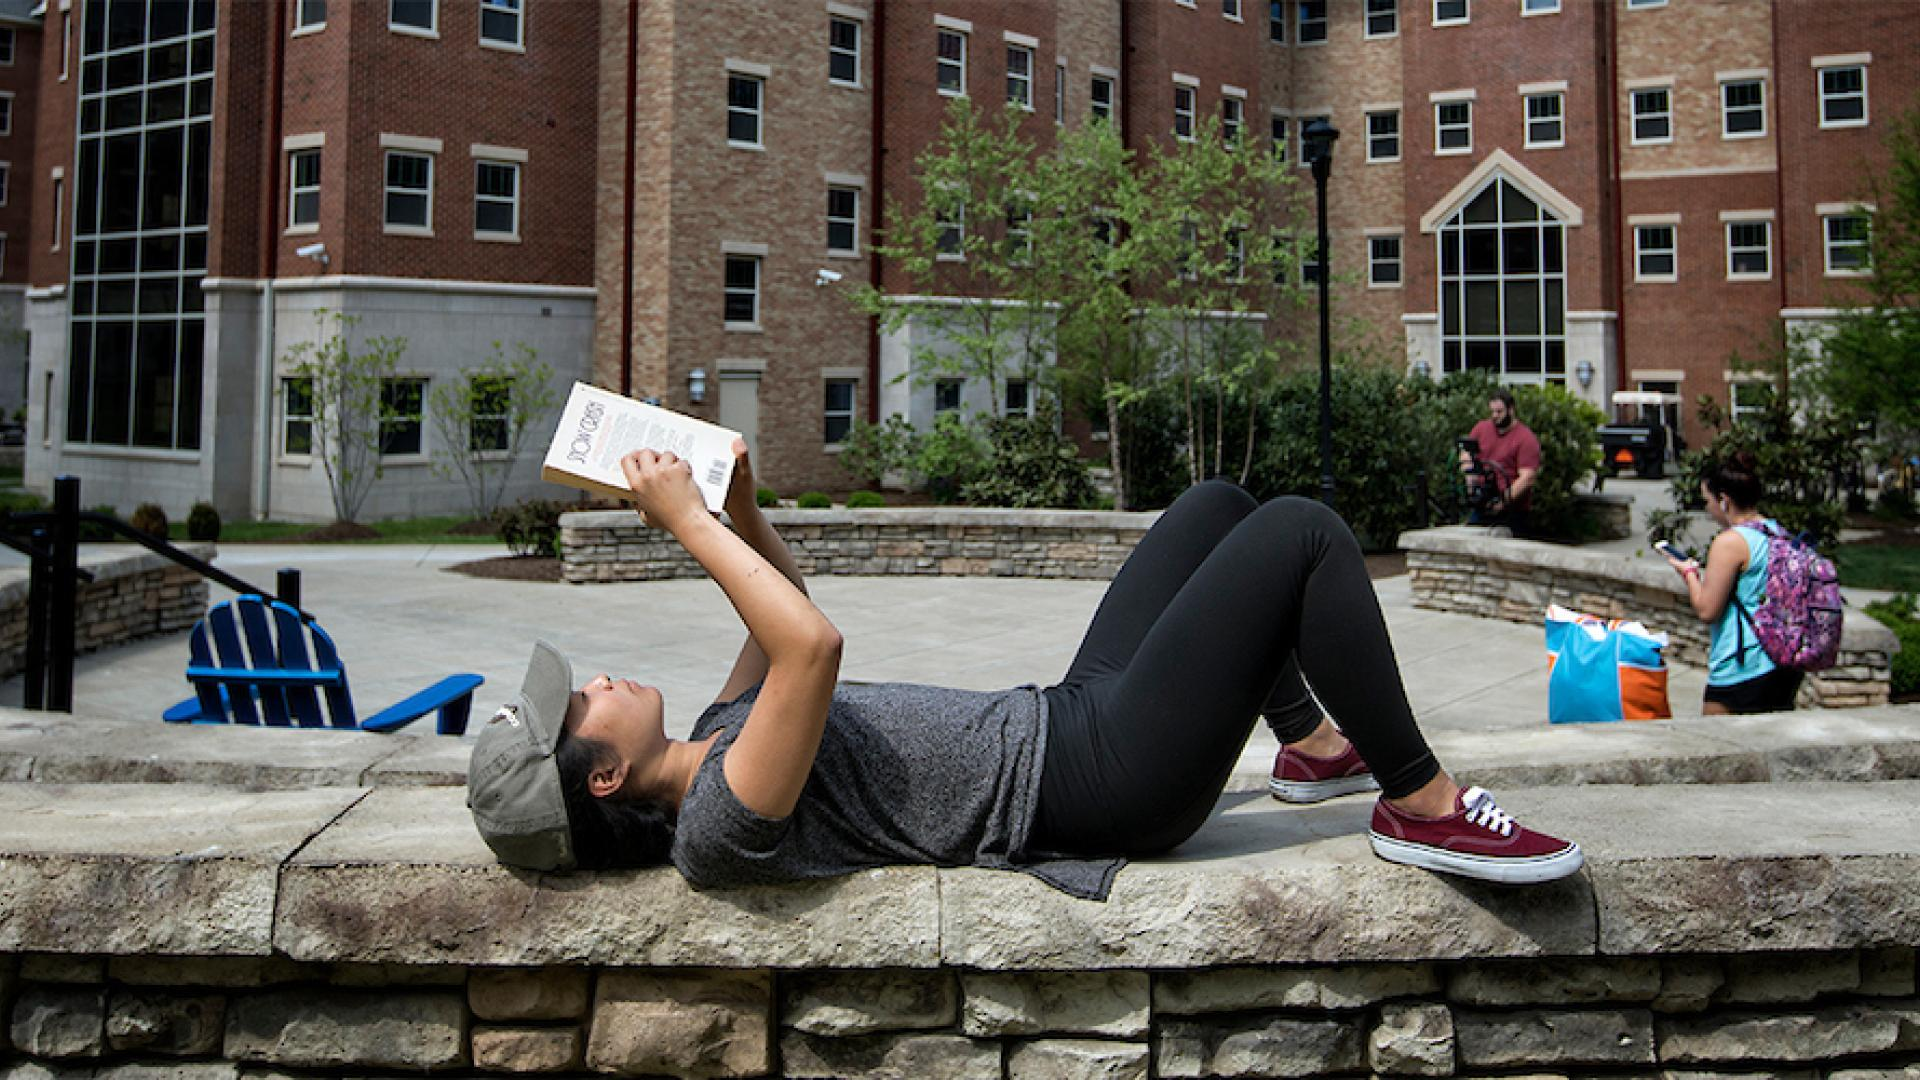 Student Enjoying a Good Book While Lying on a Stone Wall